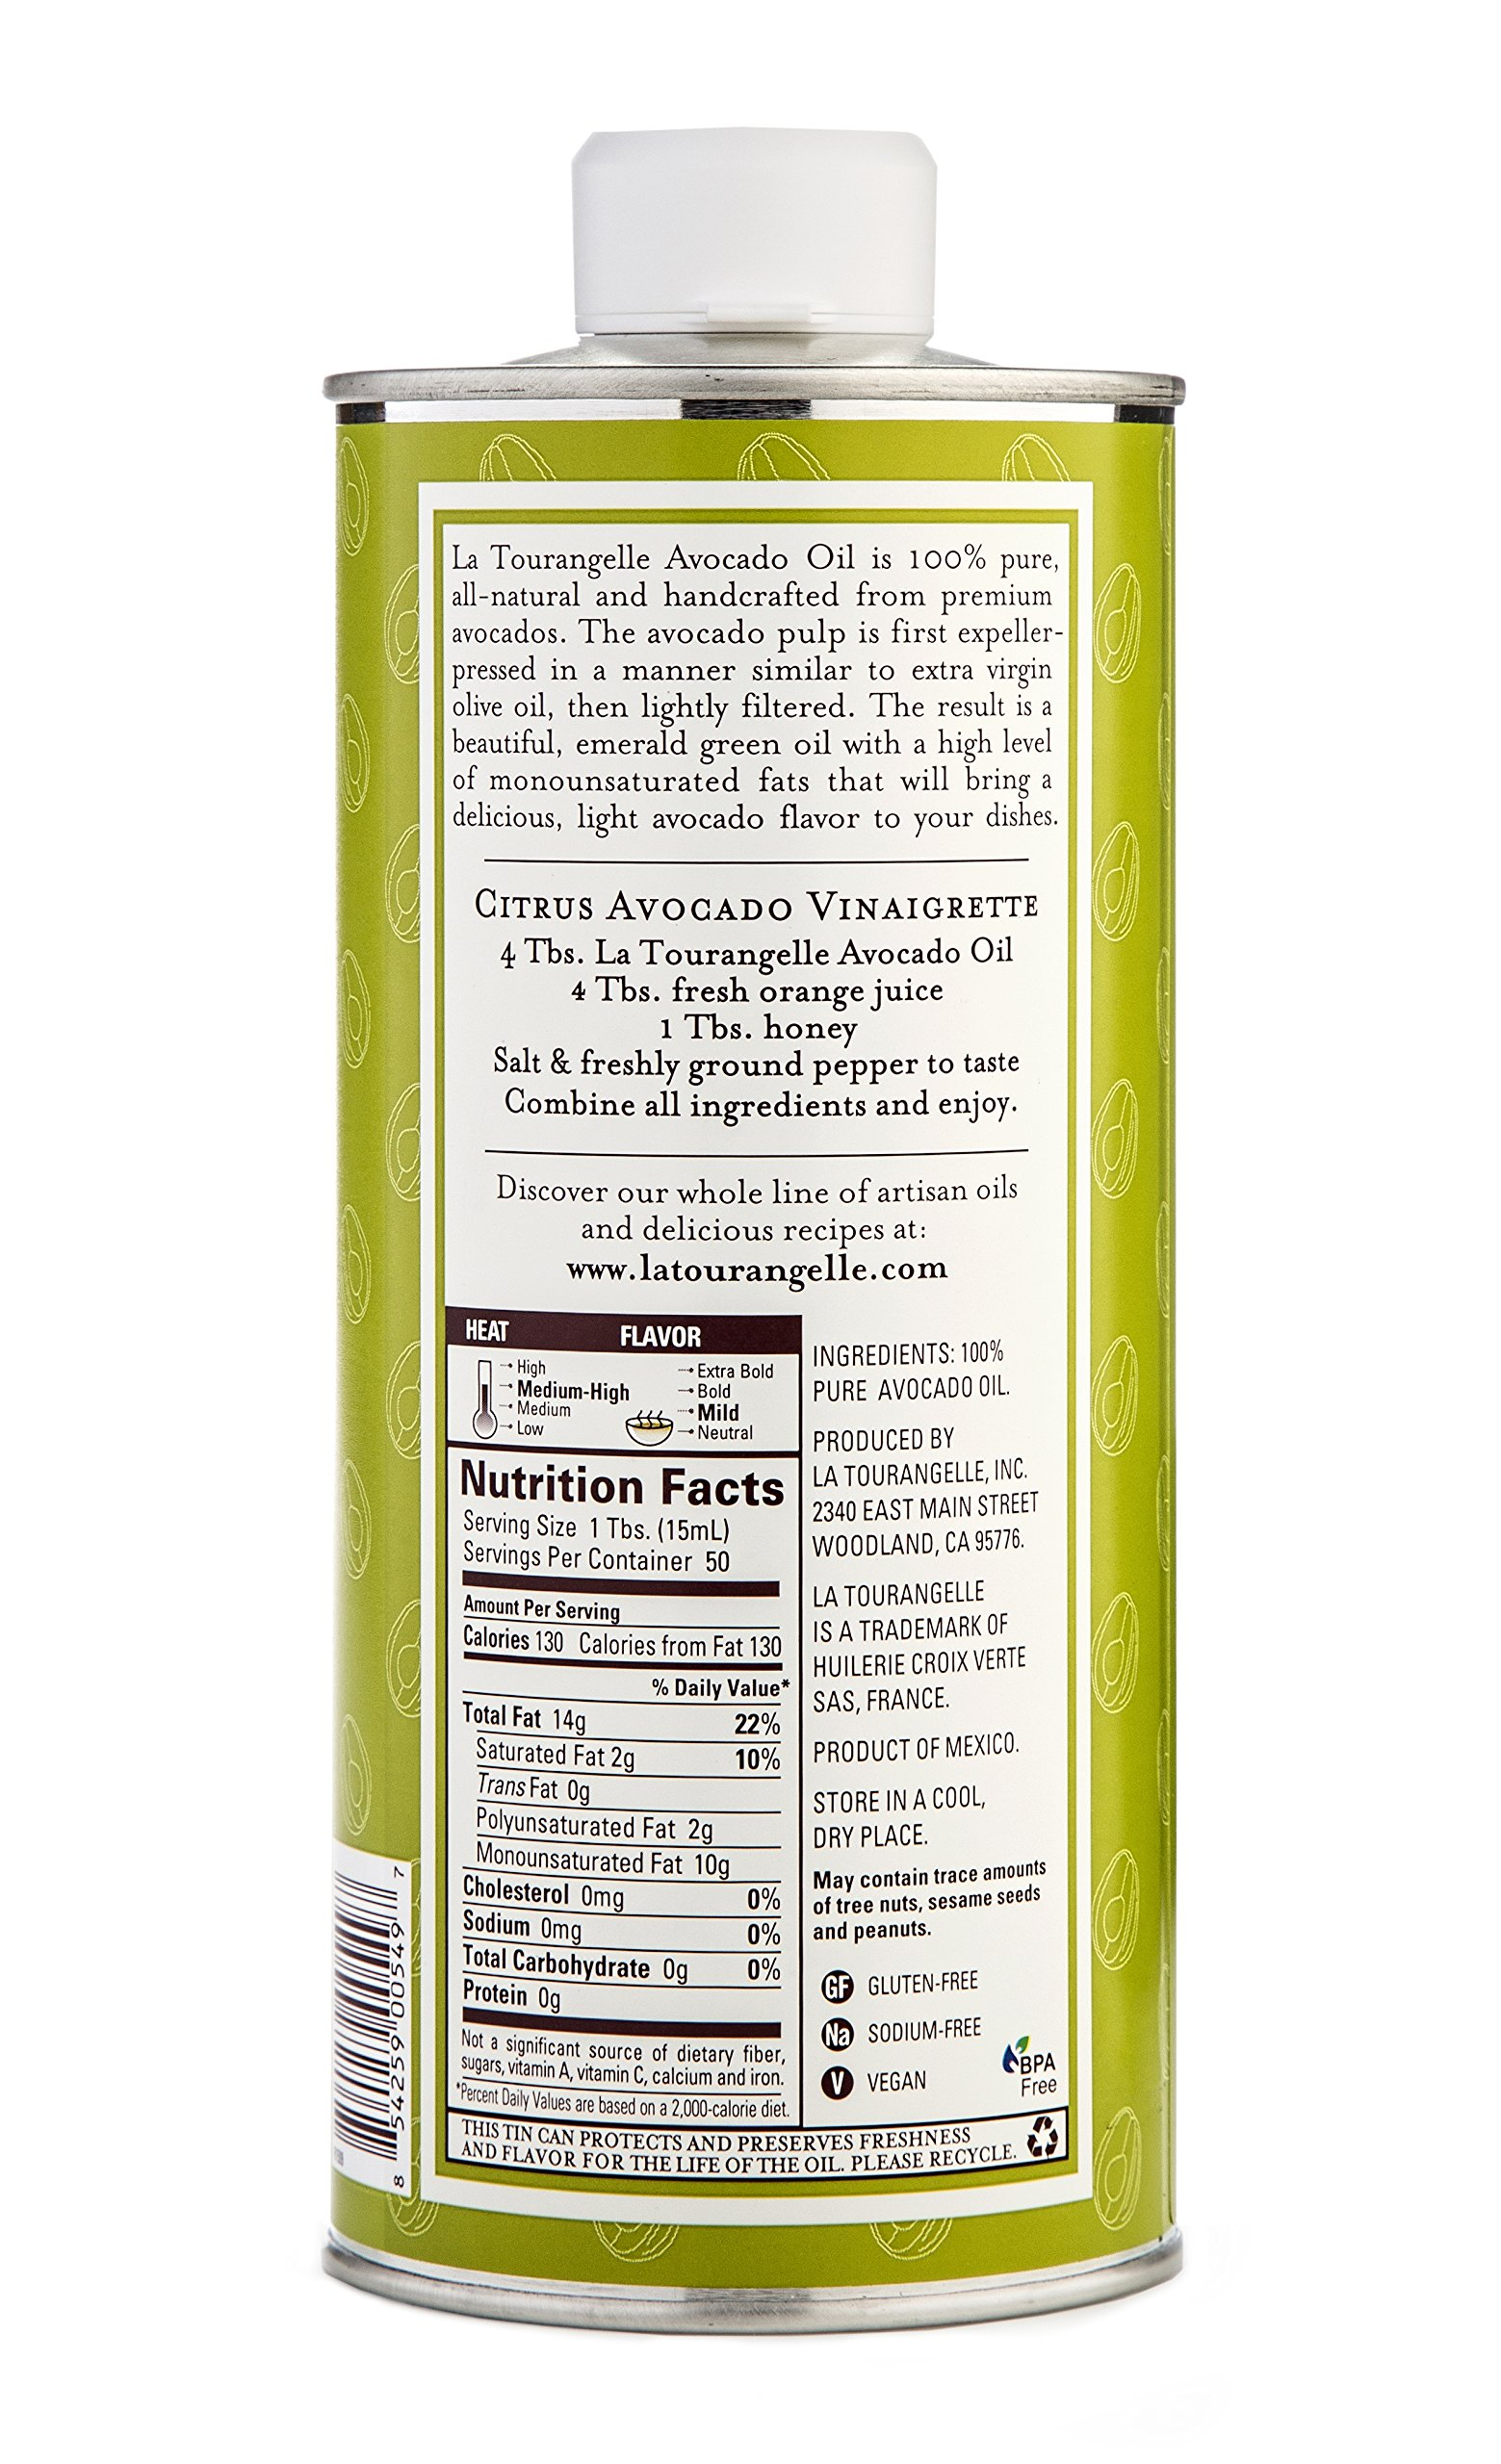 La Tourangelle Avocado Oil 25.4 Fl. Oz., All-Natural, Artisanal, Great for Salads, Fruit, Fish or Vegetables, Great Buttery Flavor by La Tourangelle (Image #4)